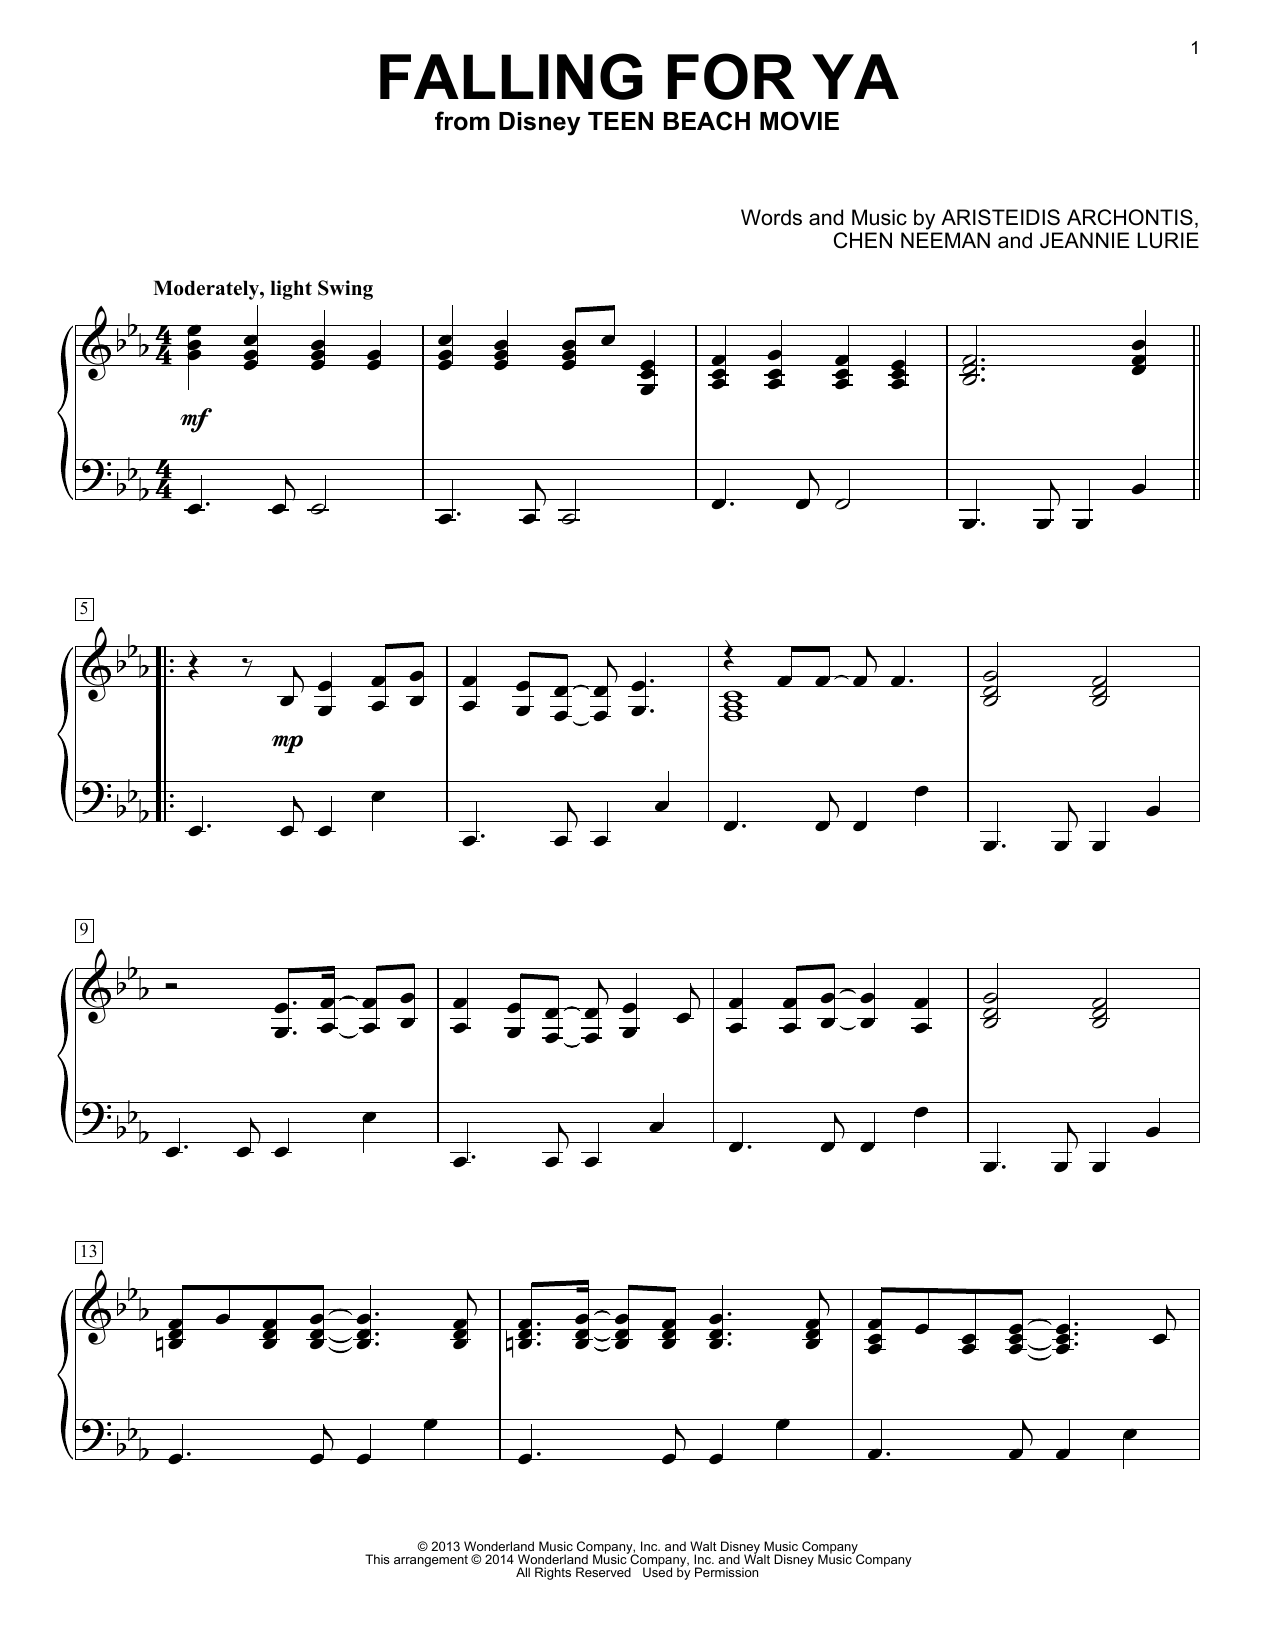 Jeannie Lurie Falling For Ya sheet music notes and chords. Download Printable PDF.